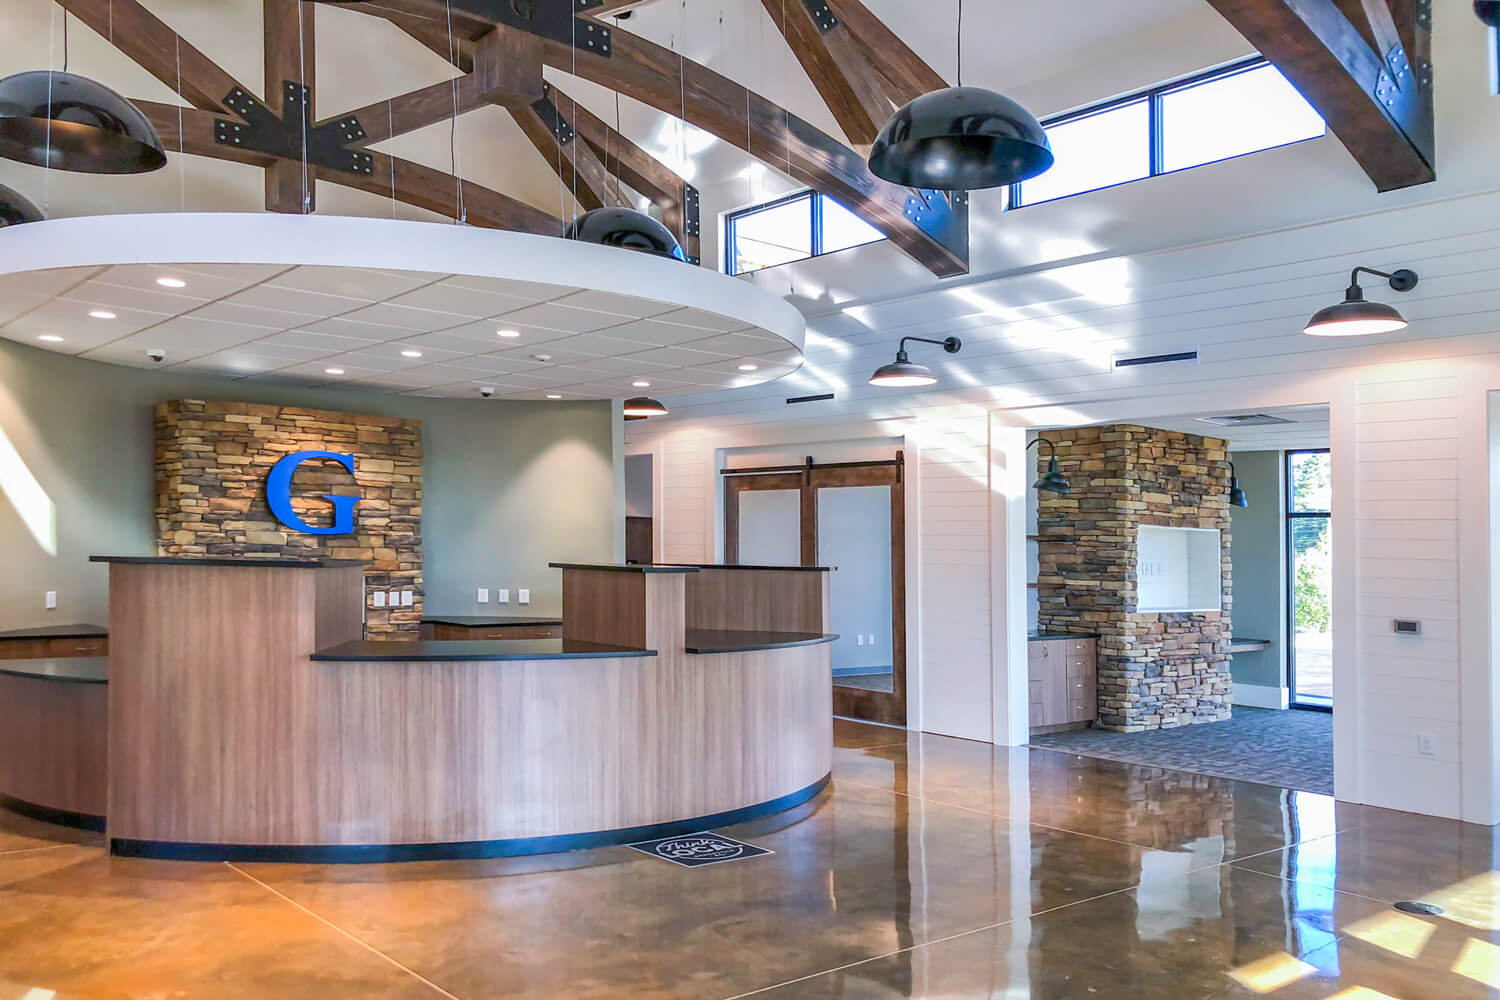 Guardian Credit Union - Main Lobby - Designed by Foshee Architecture